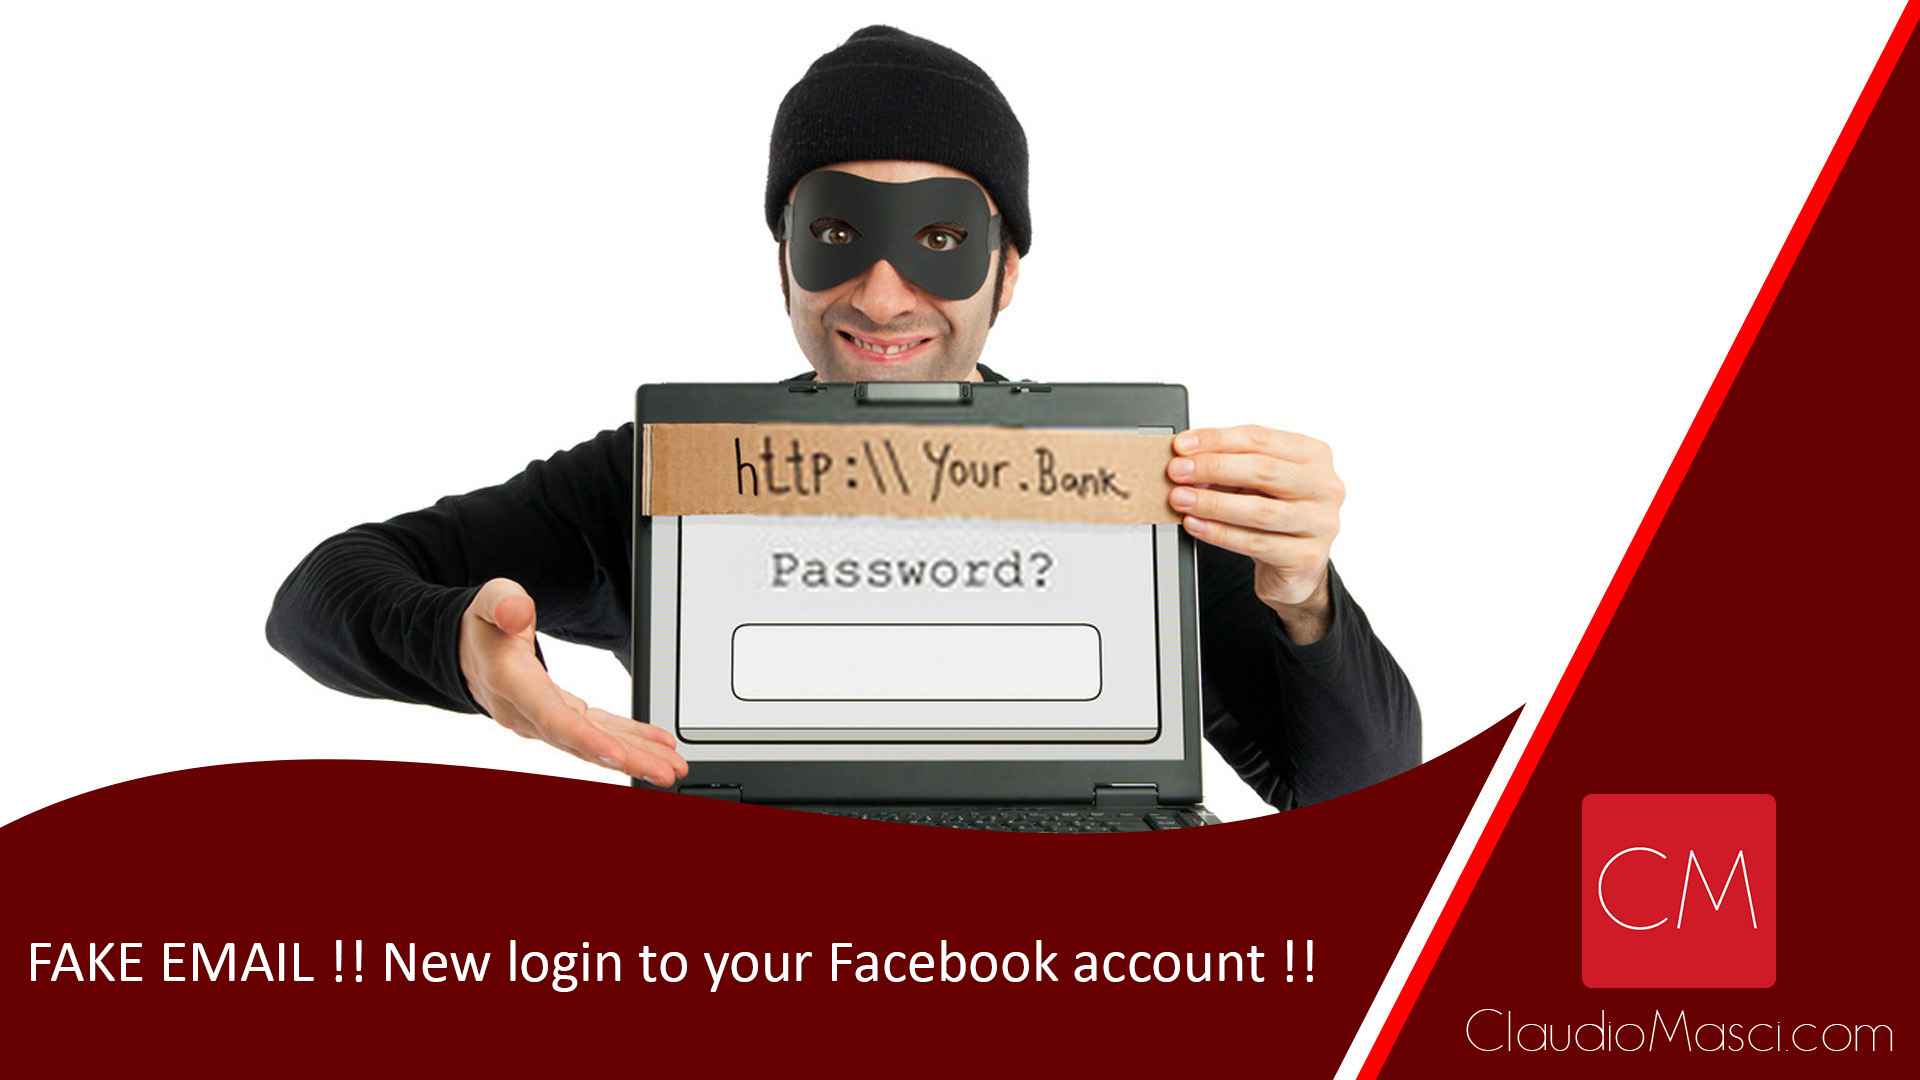 FAKE EMAIL: !! New login to your Facebook account !!